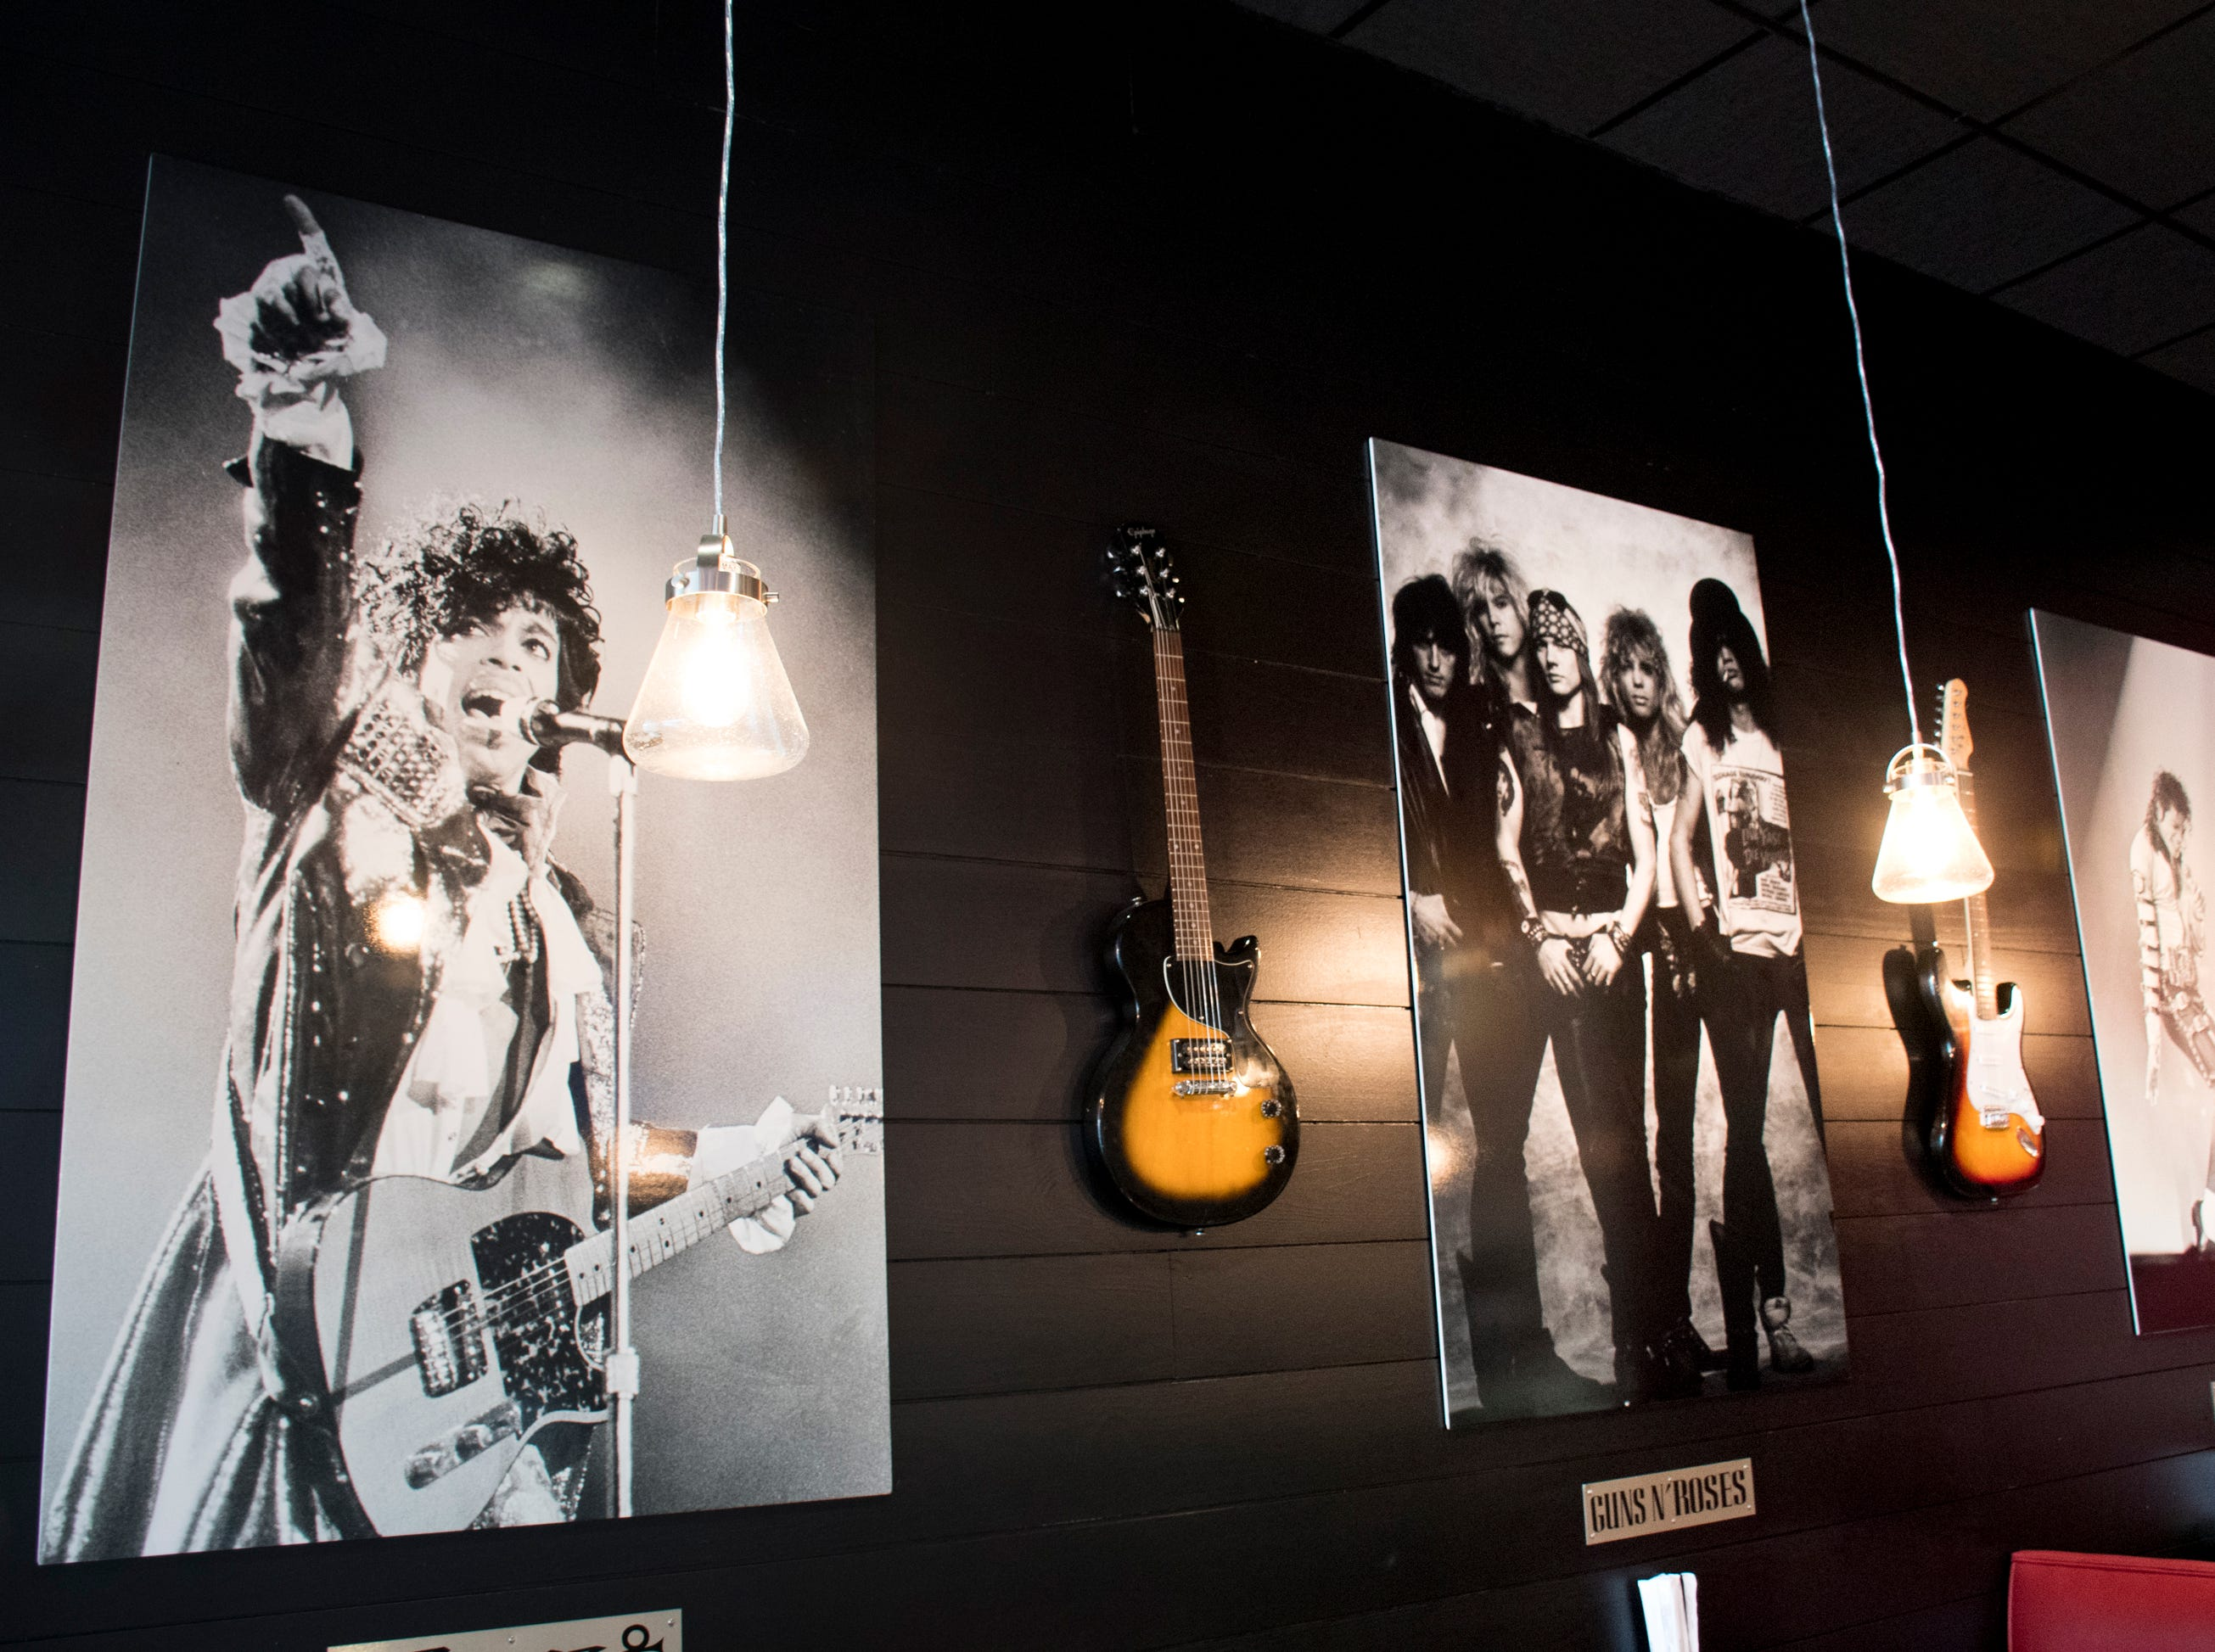 Posters of rock stars line the walls of the new Rock n' Roll Sushi restaurant in Gulf Breeze on Friday, January 18, 2019.